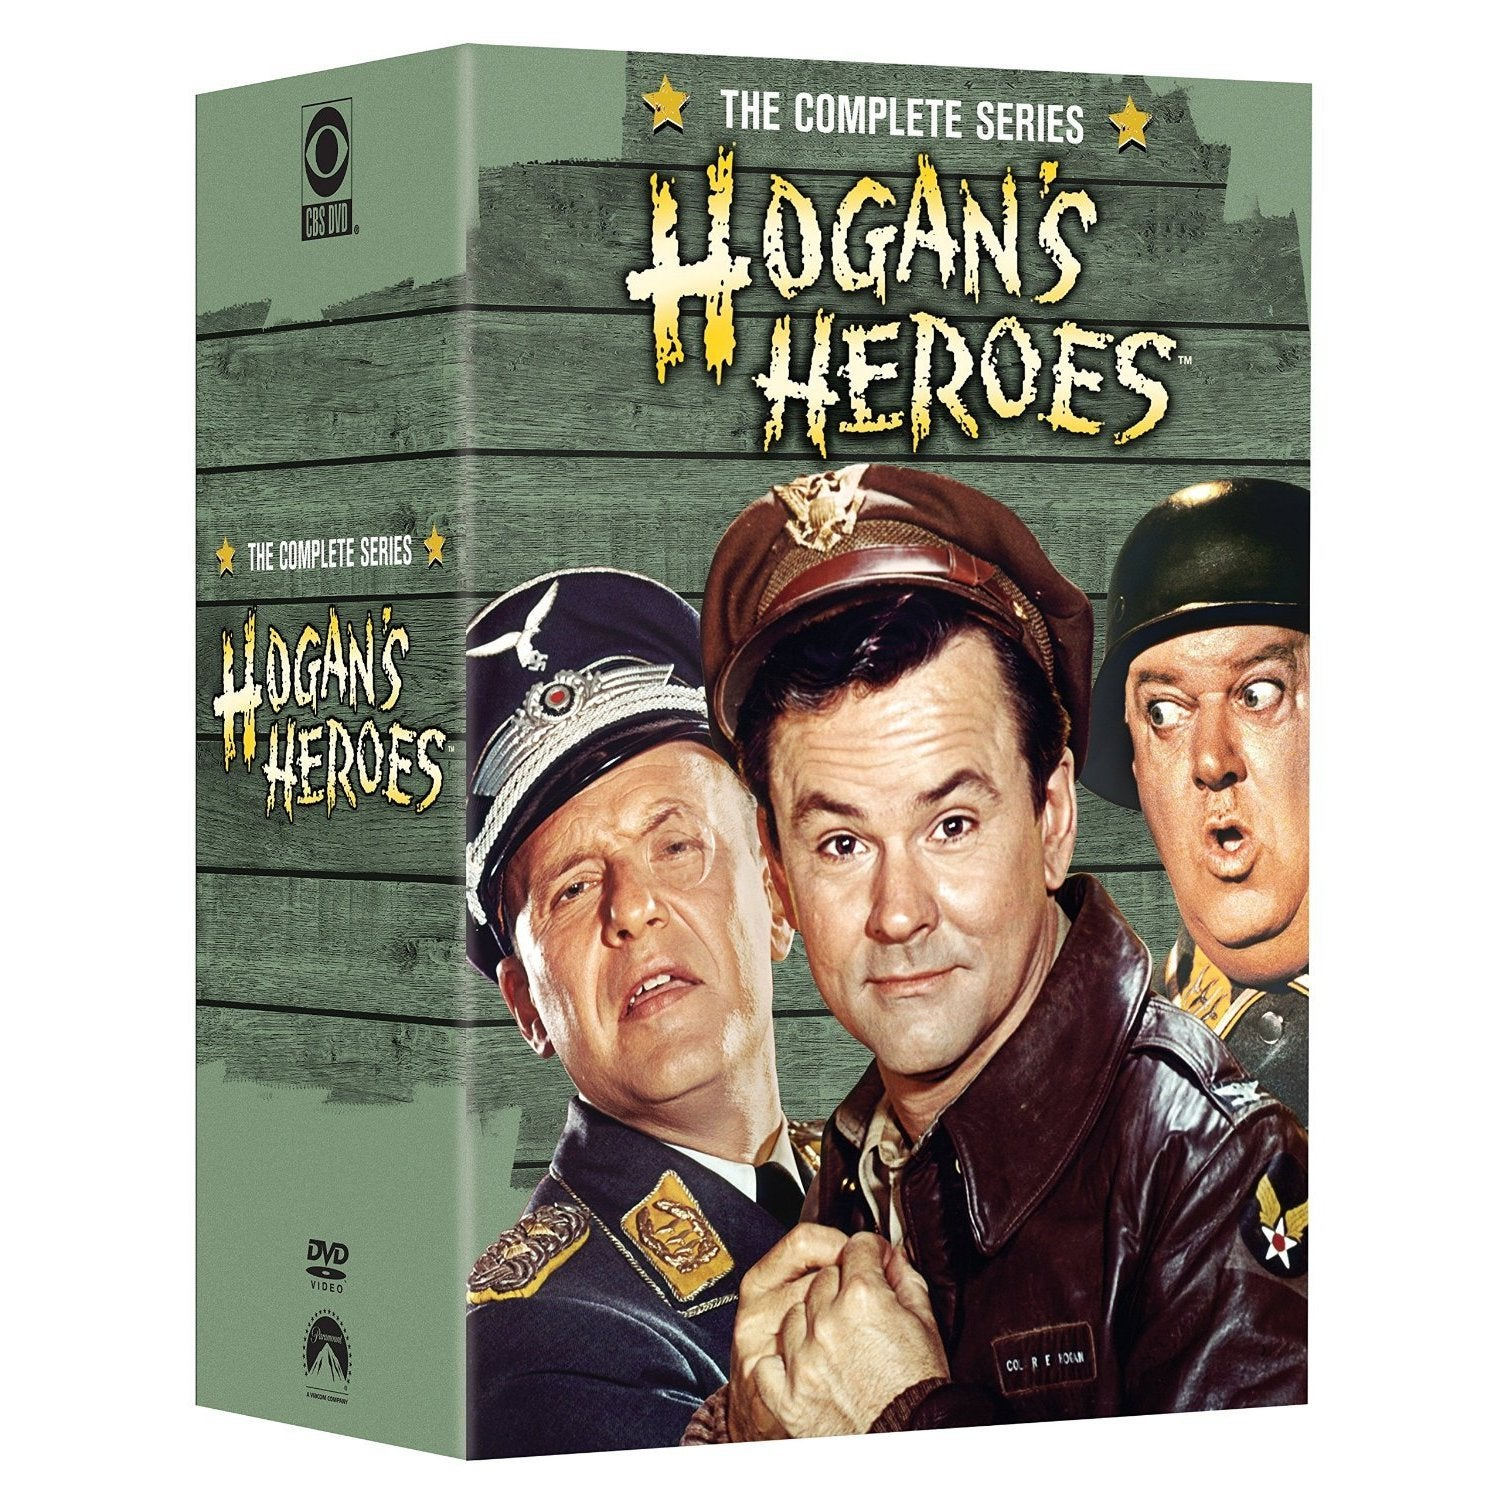 Hogan's Heroes: The Complete Series (DVD)